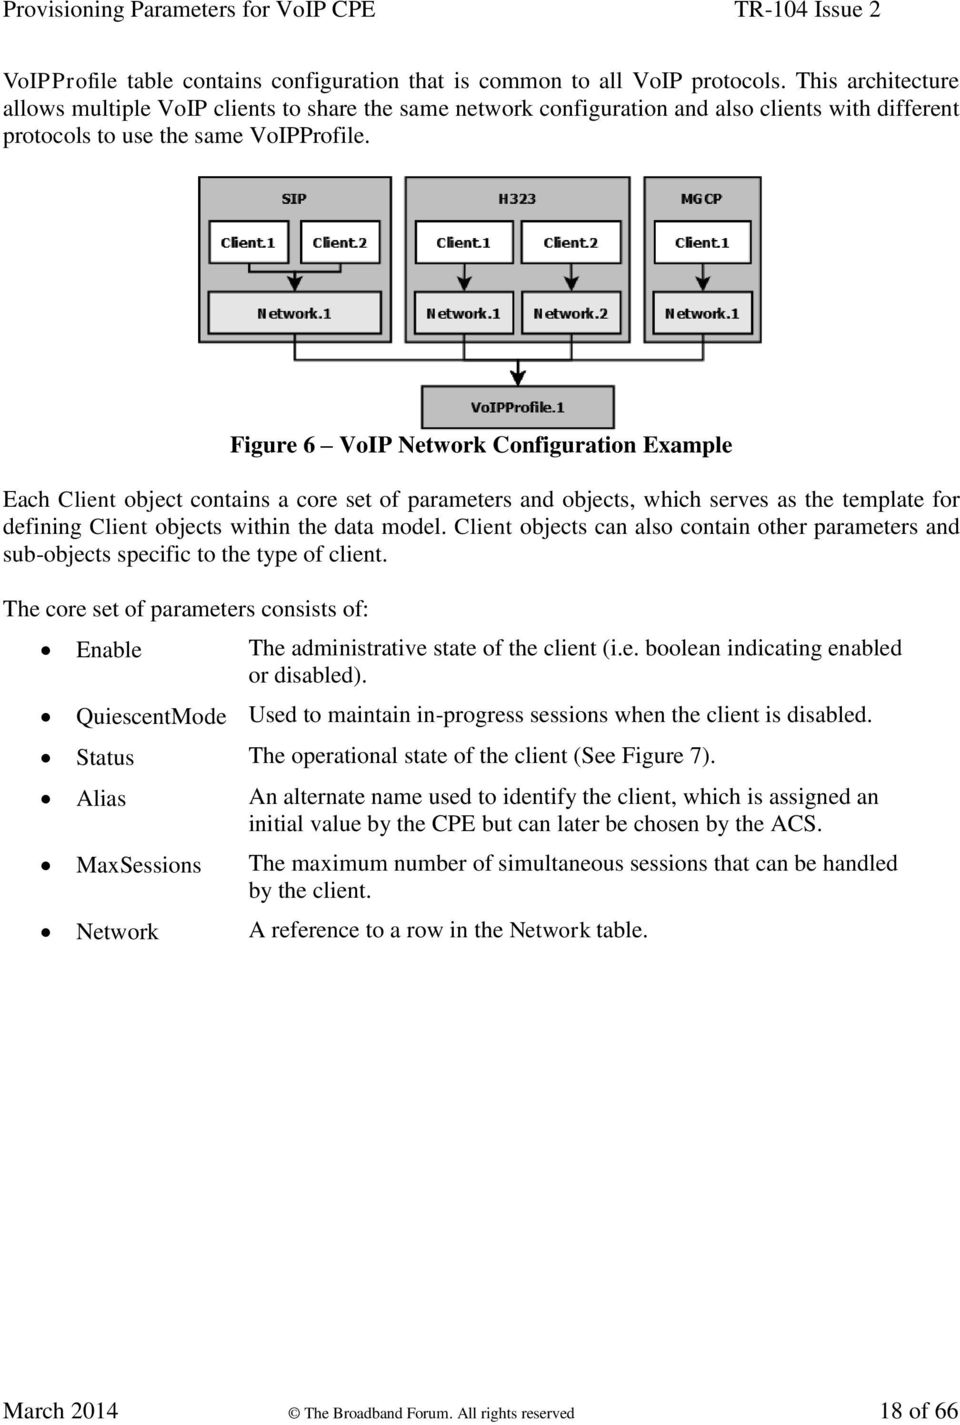 Figure 6 VoIP Network Configuration Example Each Client object contains a core set of parameters and objects, which serves as the template for defining Client objects within the data model.